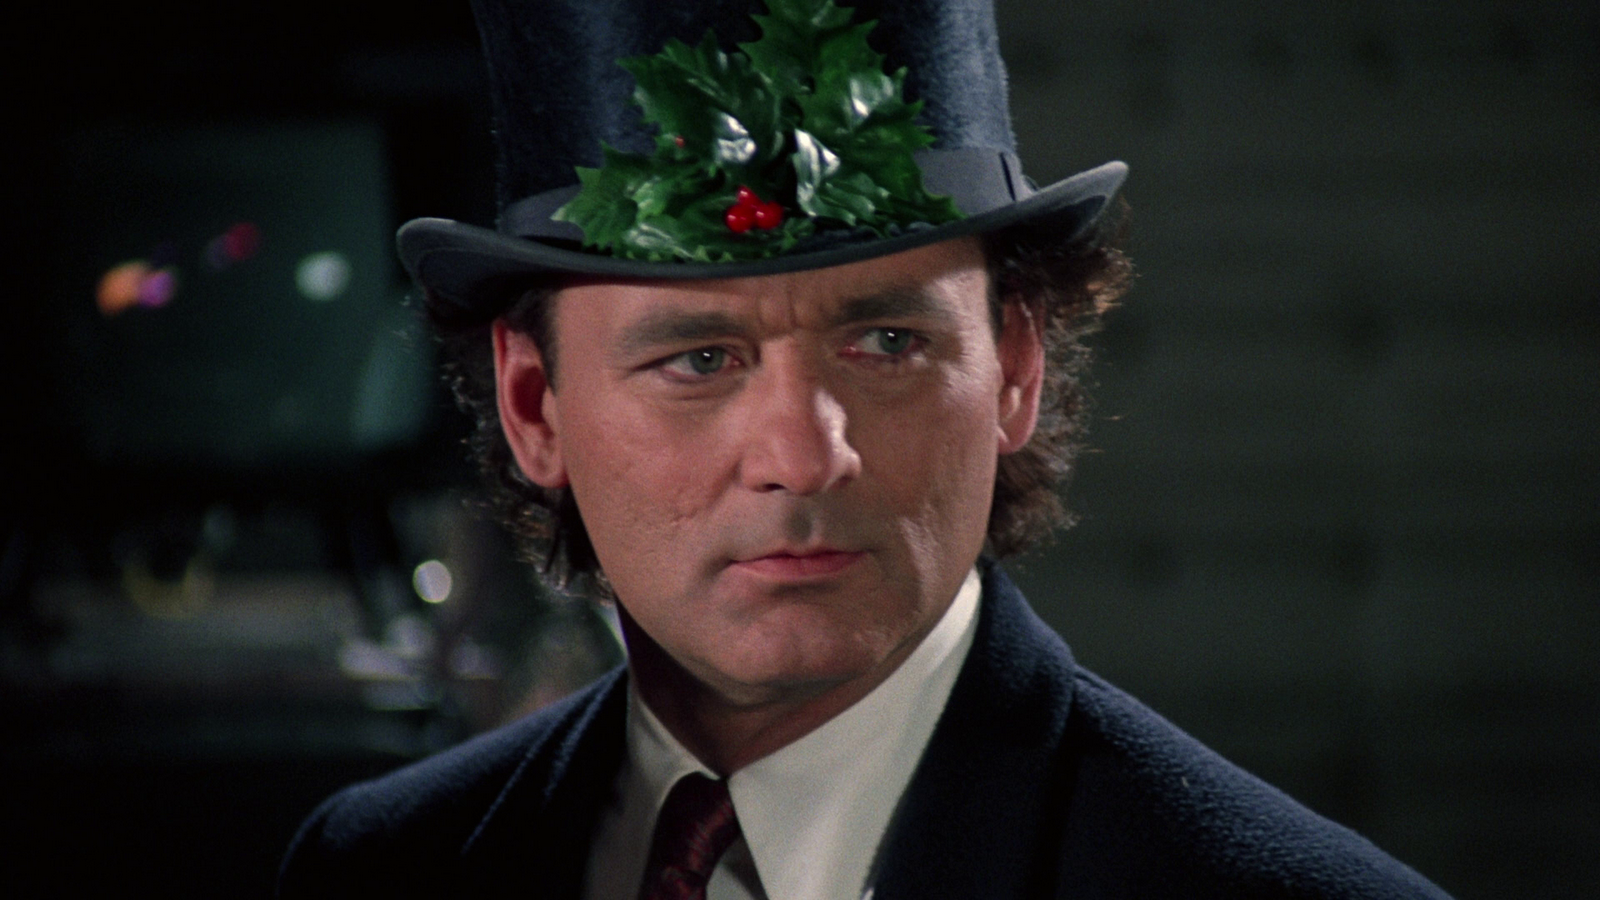 http://www.thecinemen.com/wp-content/uploads/2015/11/GAC_Scrooged.png